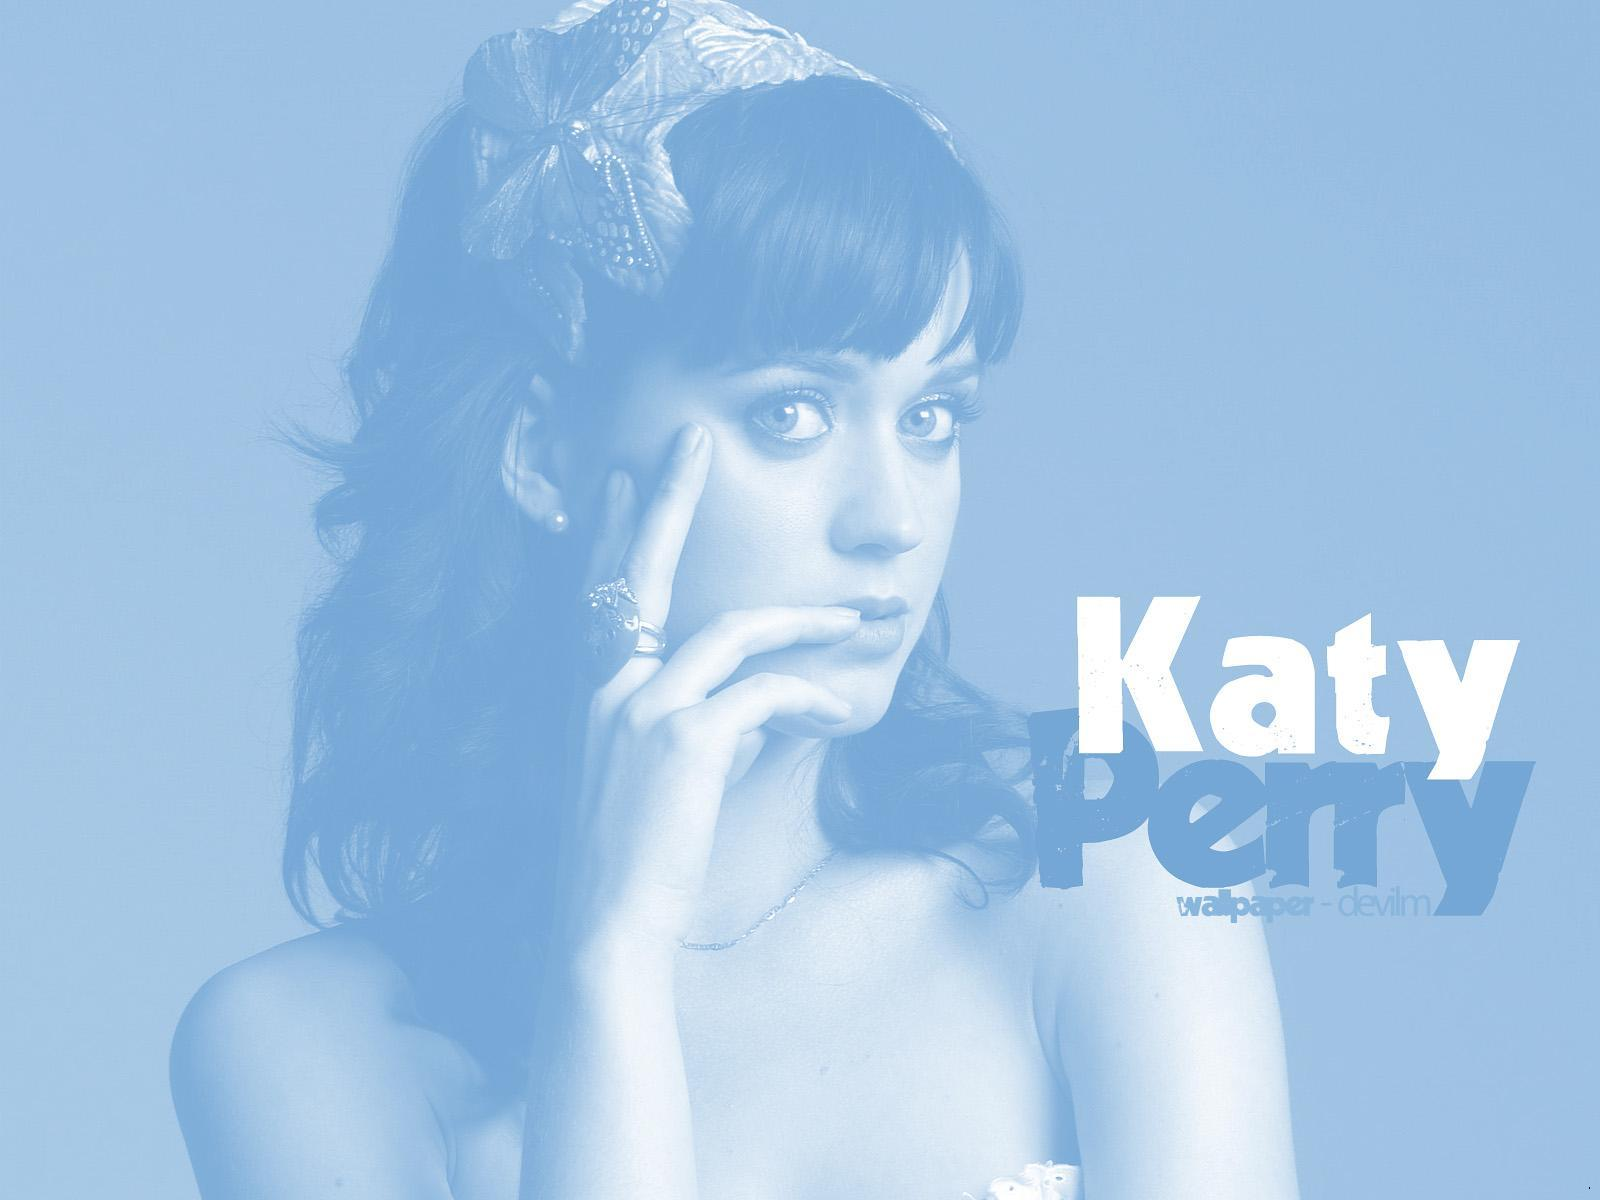 http://4.bp.blogspot.com/-l3OT6T7XumU/TvRXiLXRGdI/AAAAAAAAL4o/CZFwkb1-COk/s1600/ketty_perry_new_hd_wallpapers_blue_sign.jpg